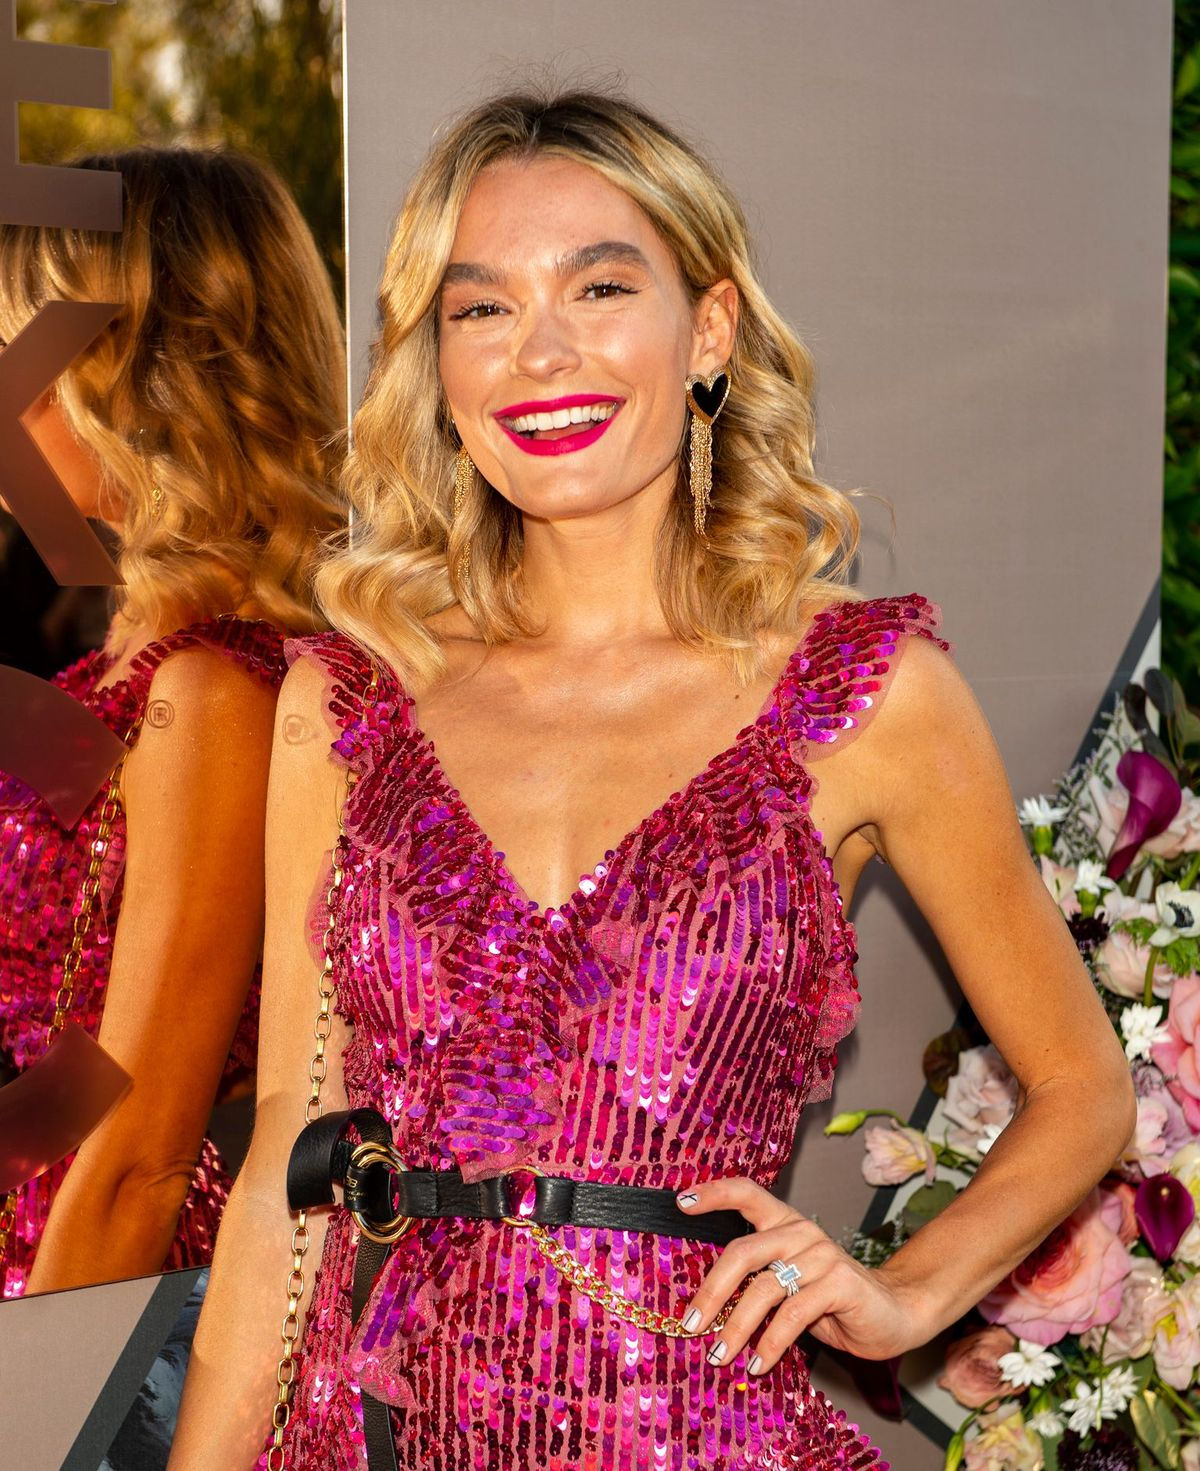 Quigley aka Casey Goode at the Fashion Island's StyleWeek Presented By SIMPLY on September 13, 2019 in Newport Beach, California | Photo: Getty Images